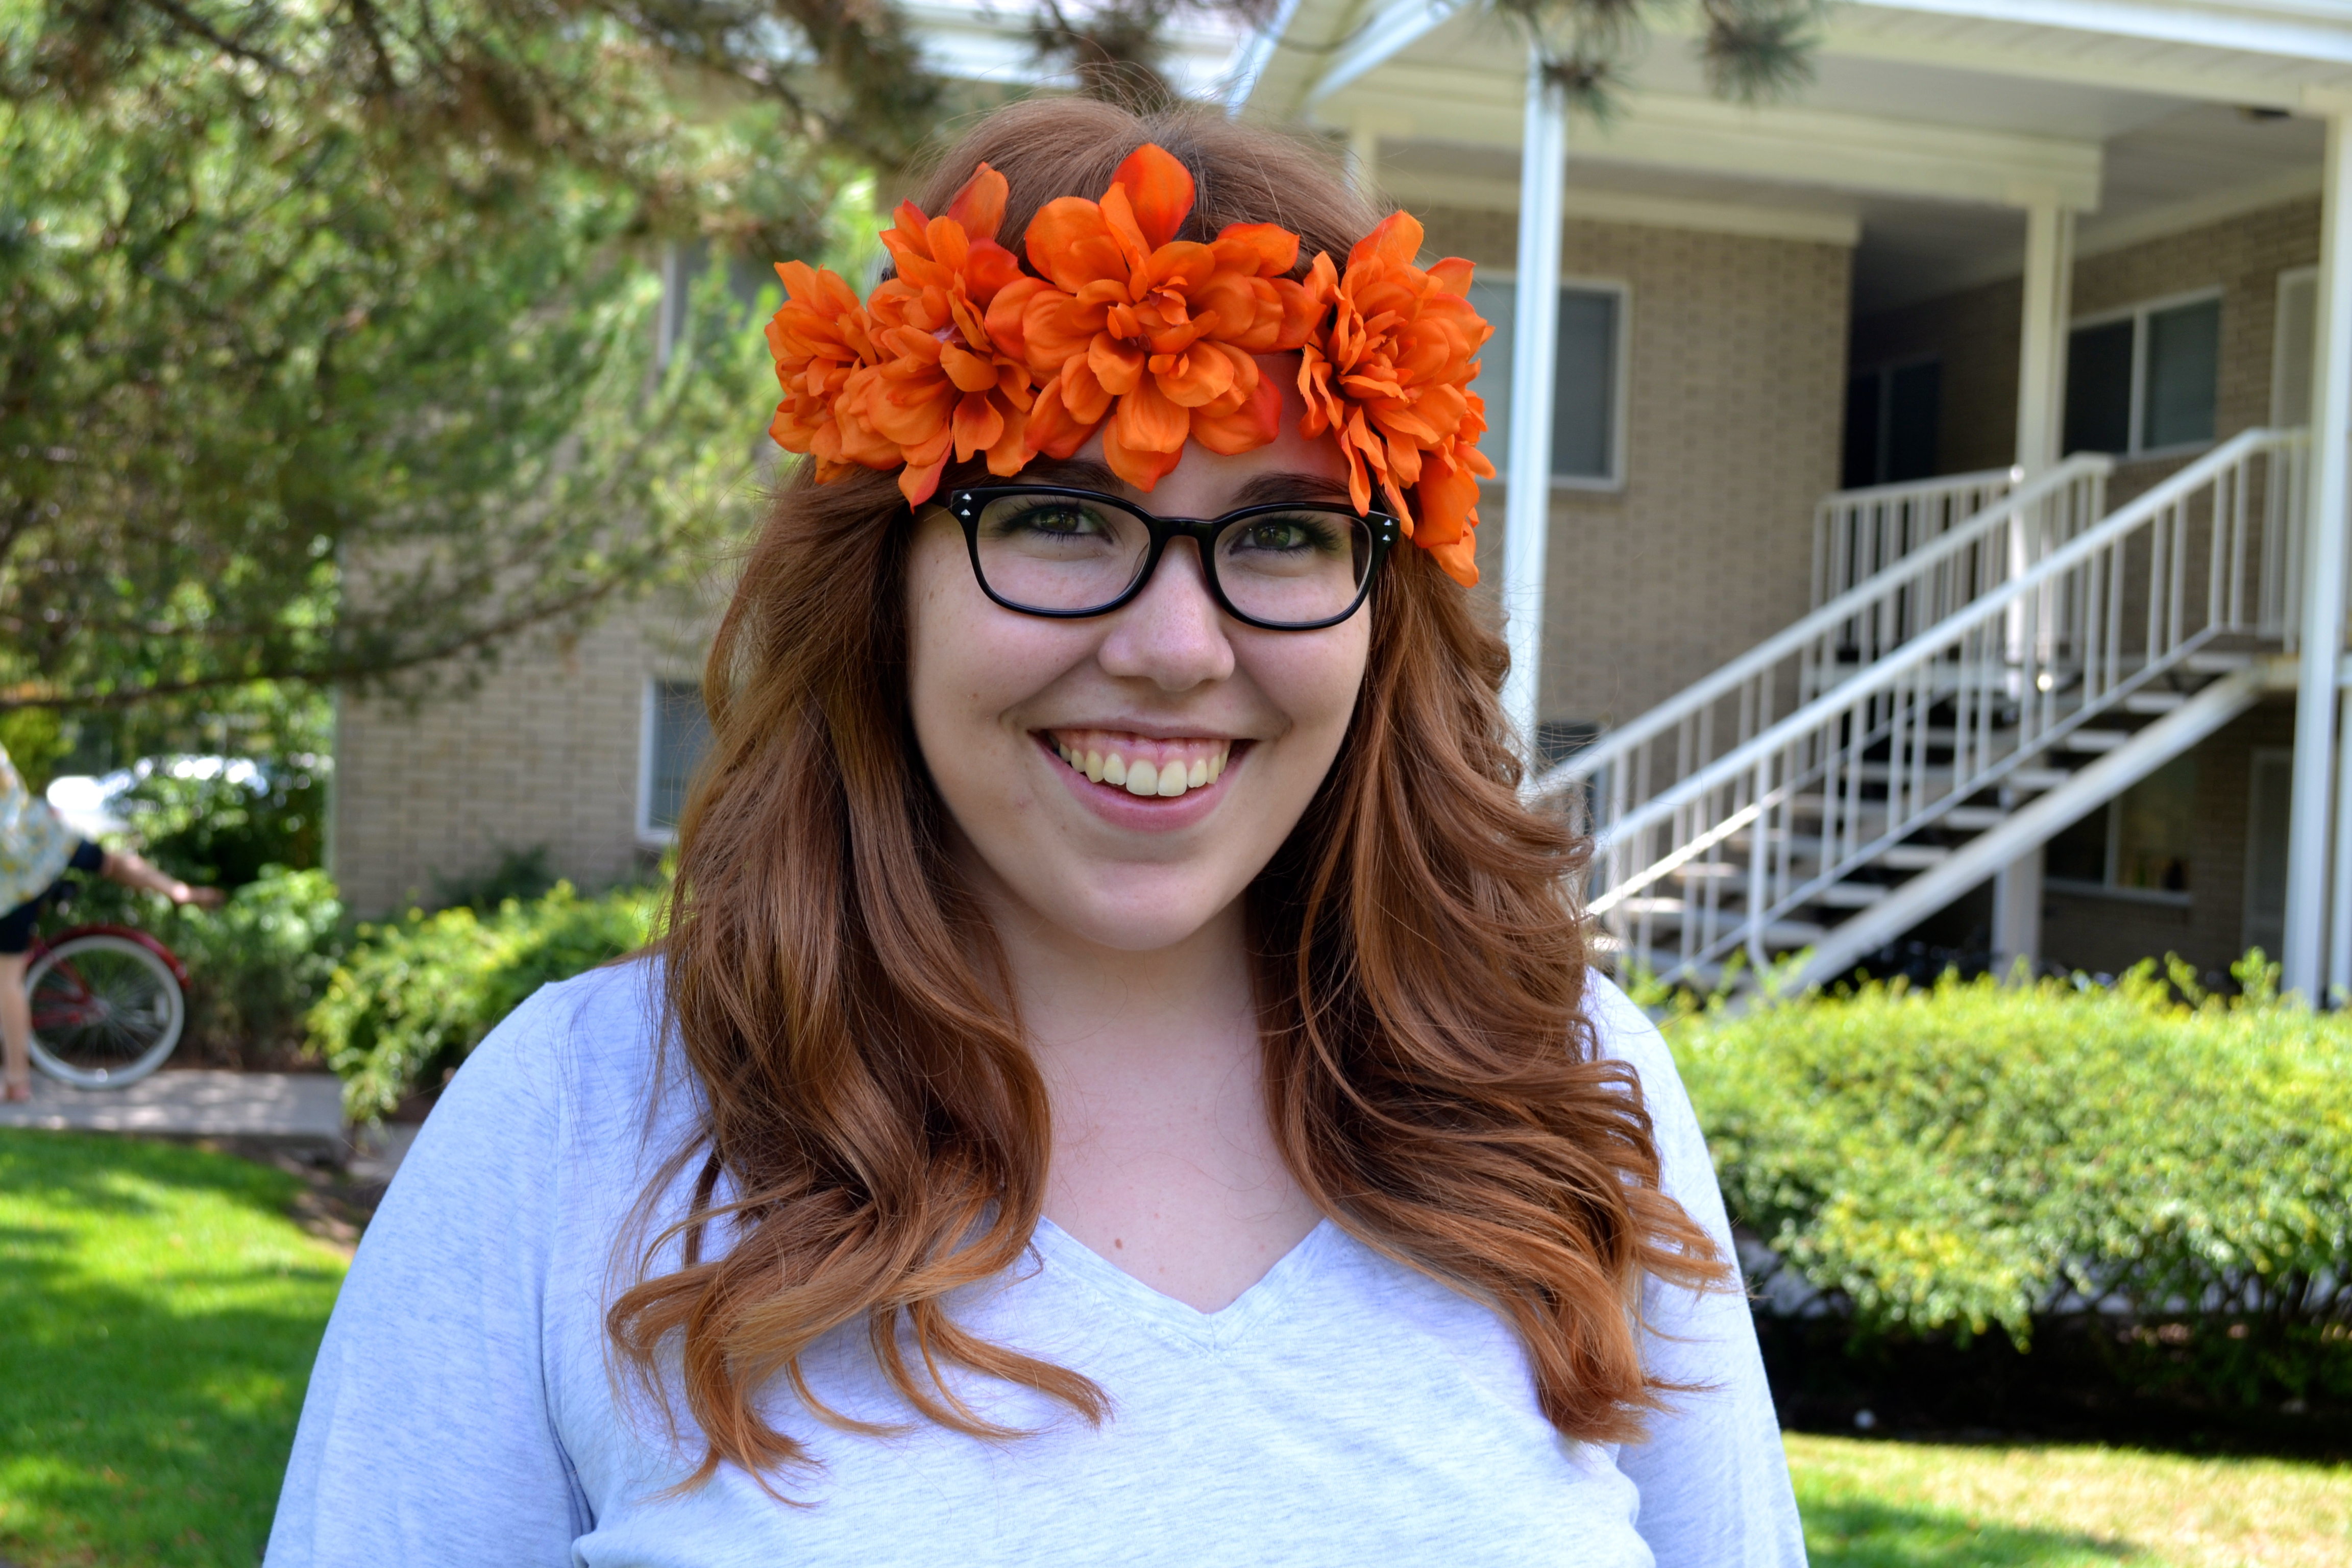 Flower crown eggswithketchup yes i dyed my hair this summer and i am loving my red head era tons of people have been surprised at how natural it looks and some couldnt believe izmirmasajfo